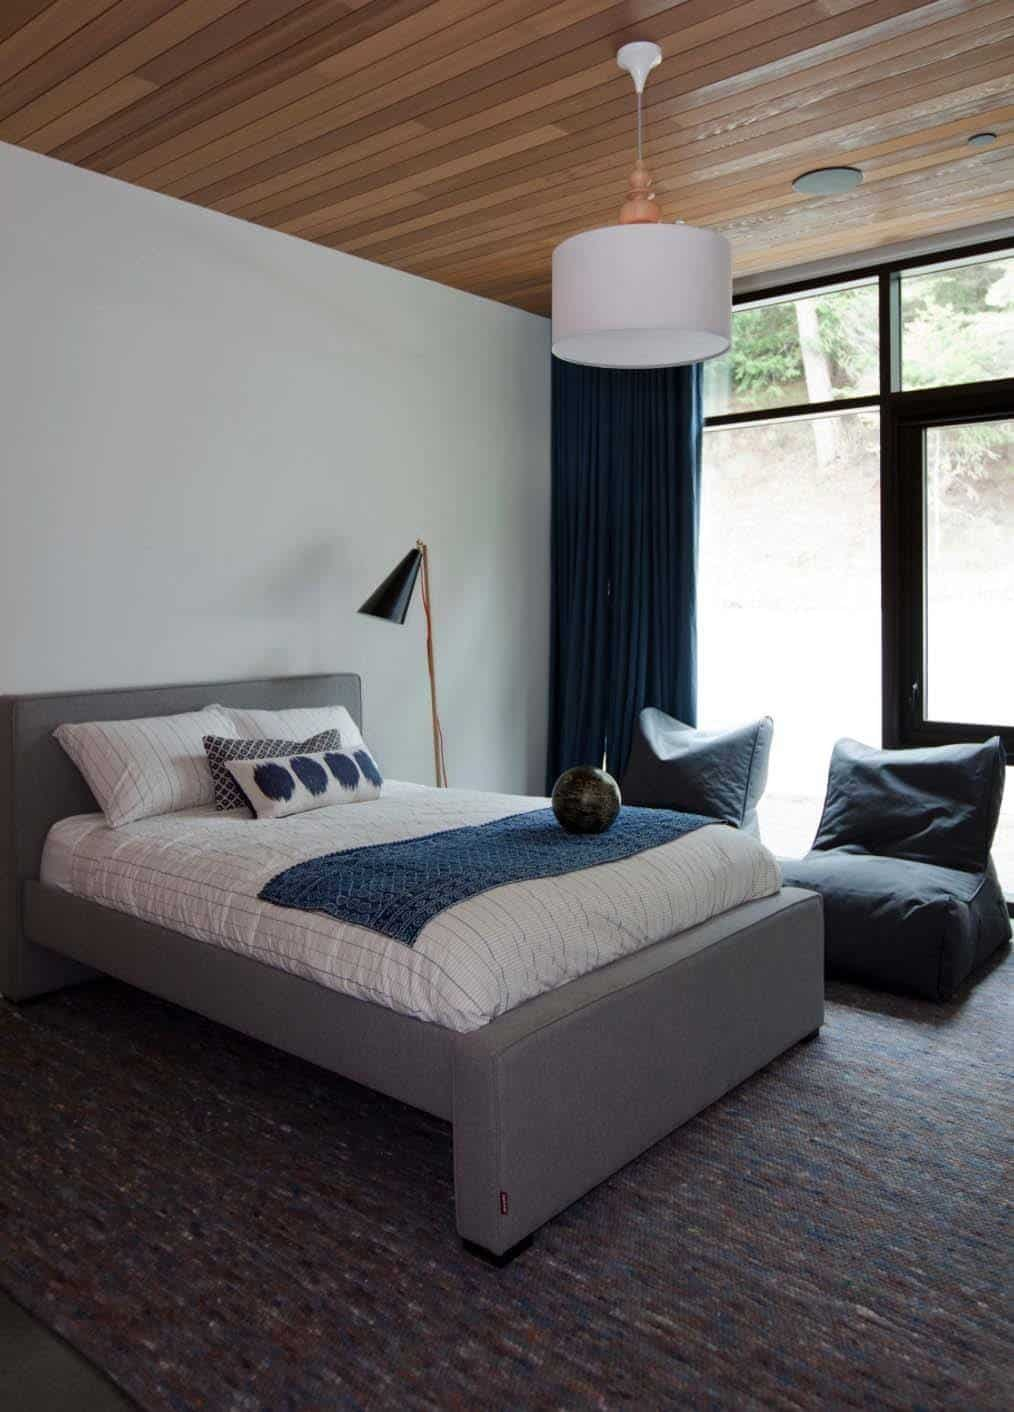 Contemporary Holiday Home-Marrimor Studio-19-1 Kindesign